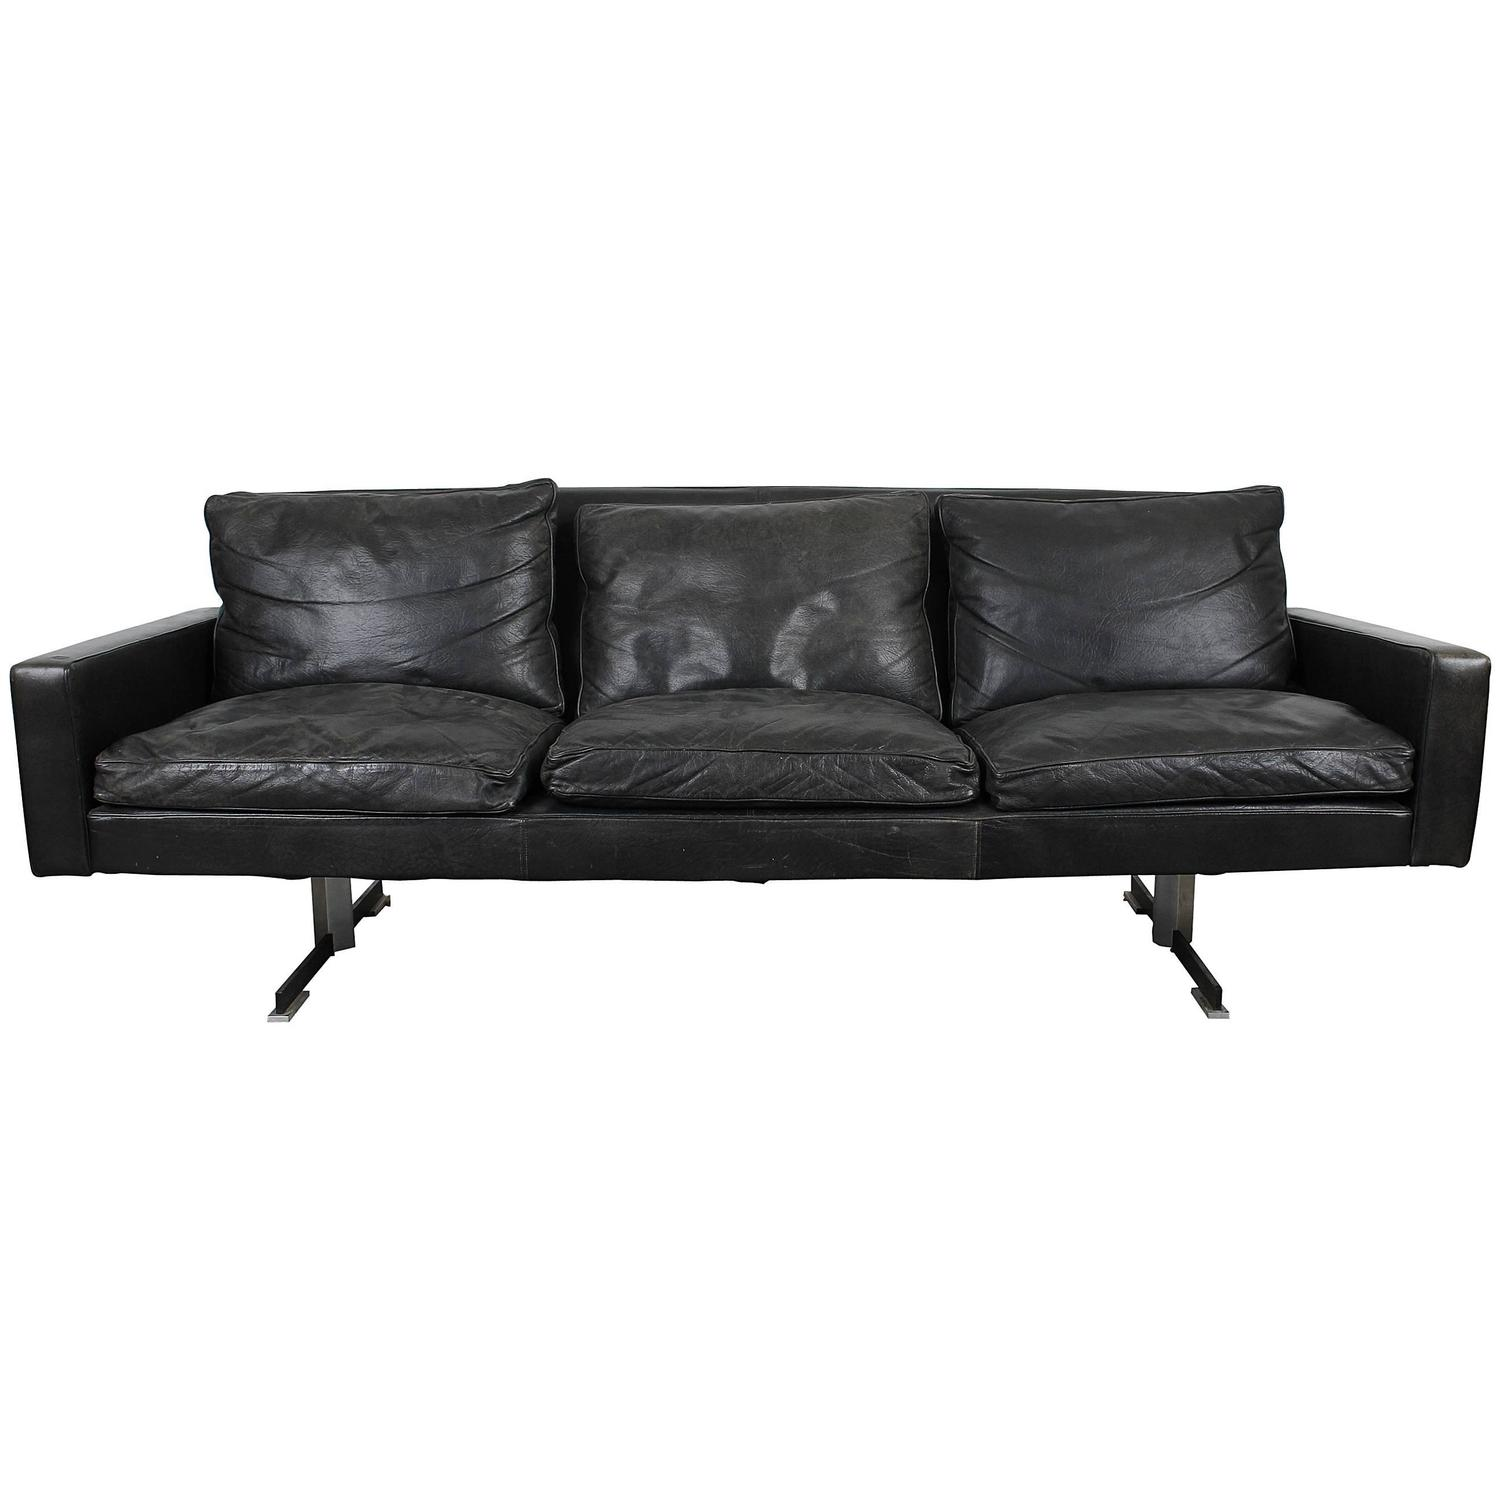 Mid-Century Modern Black Leather Sofa with Chrome Legs at 1stdibs